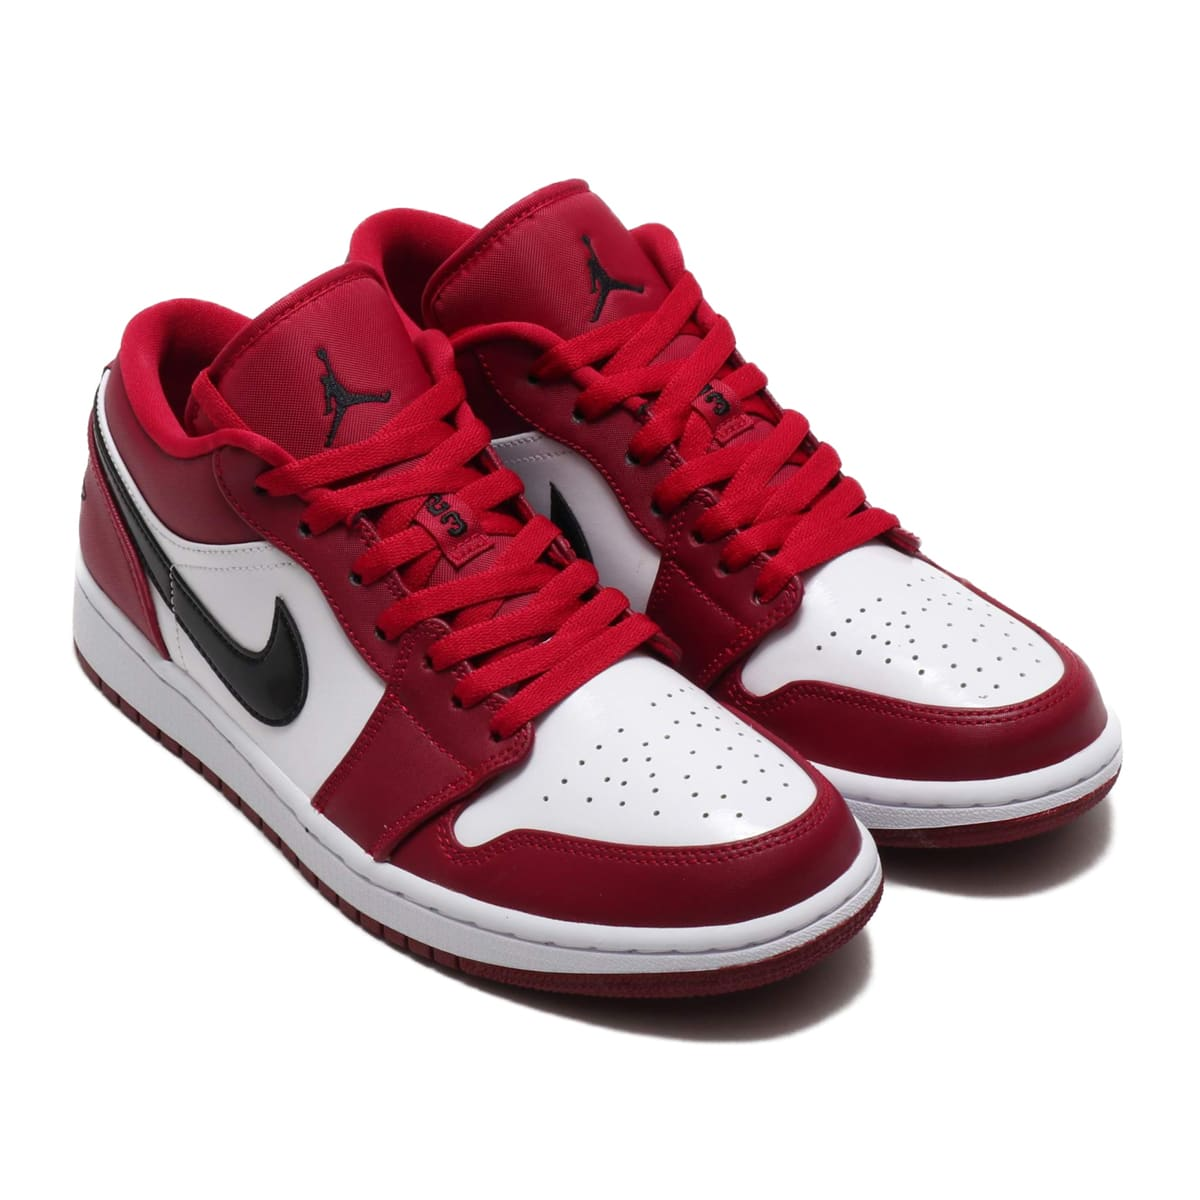 NIKE AIR JORDAN 1 LOW NOBLE RED/BLACK-WHITE 20SP-S_photo_large